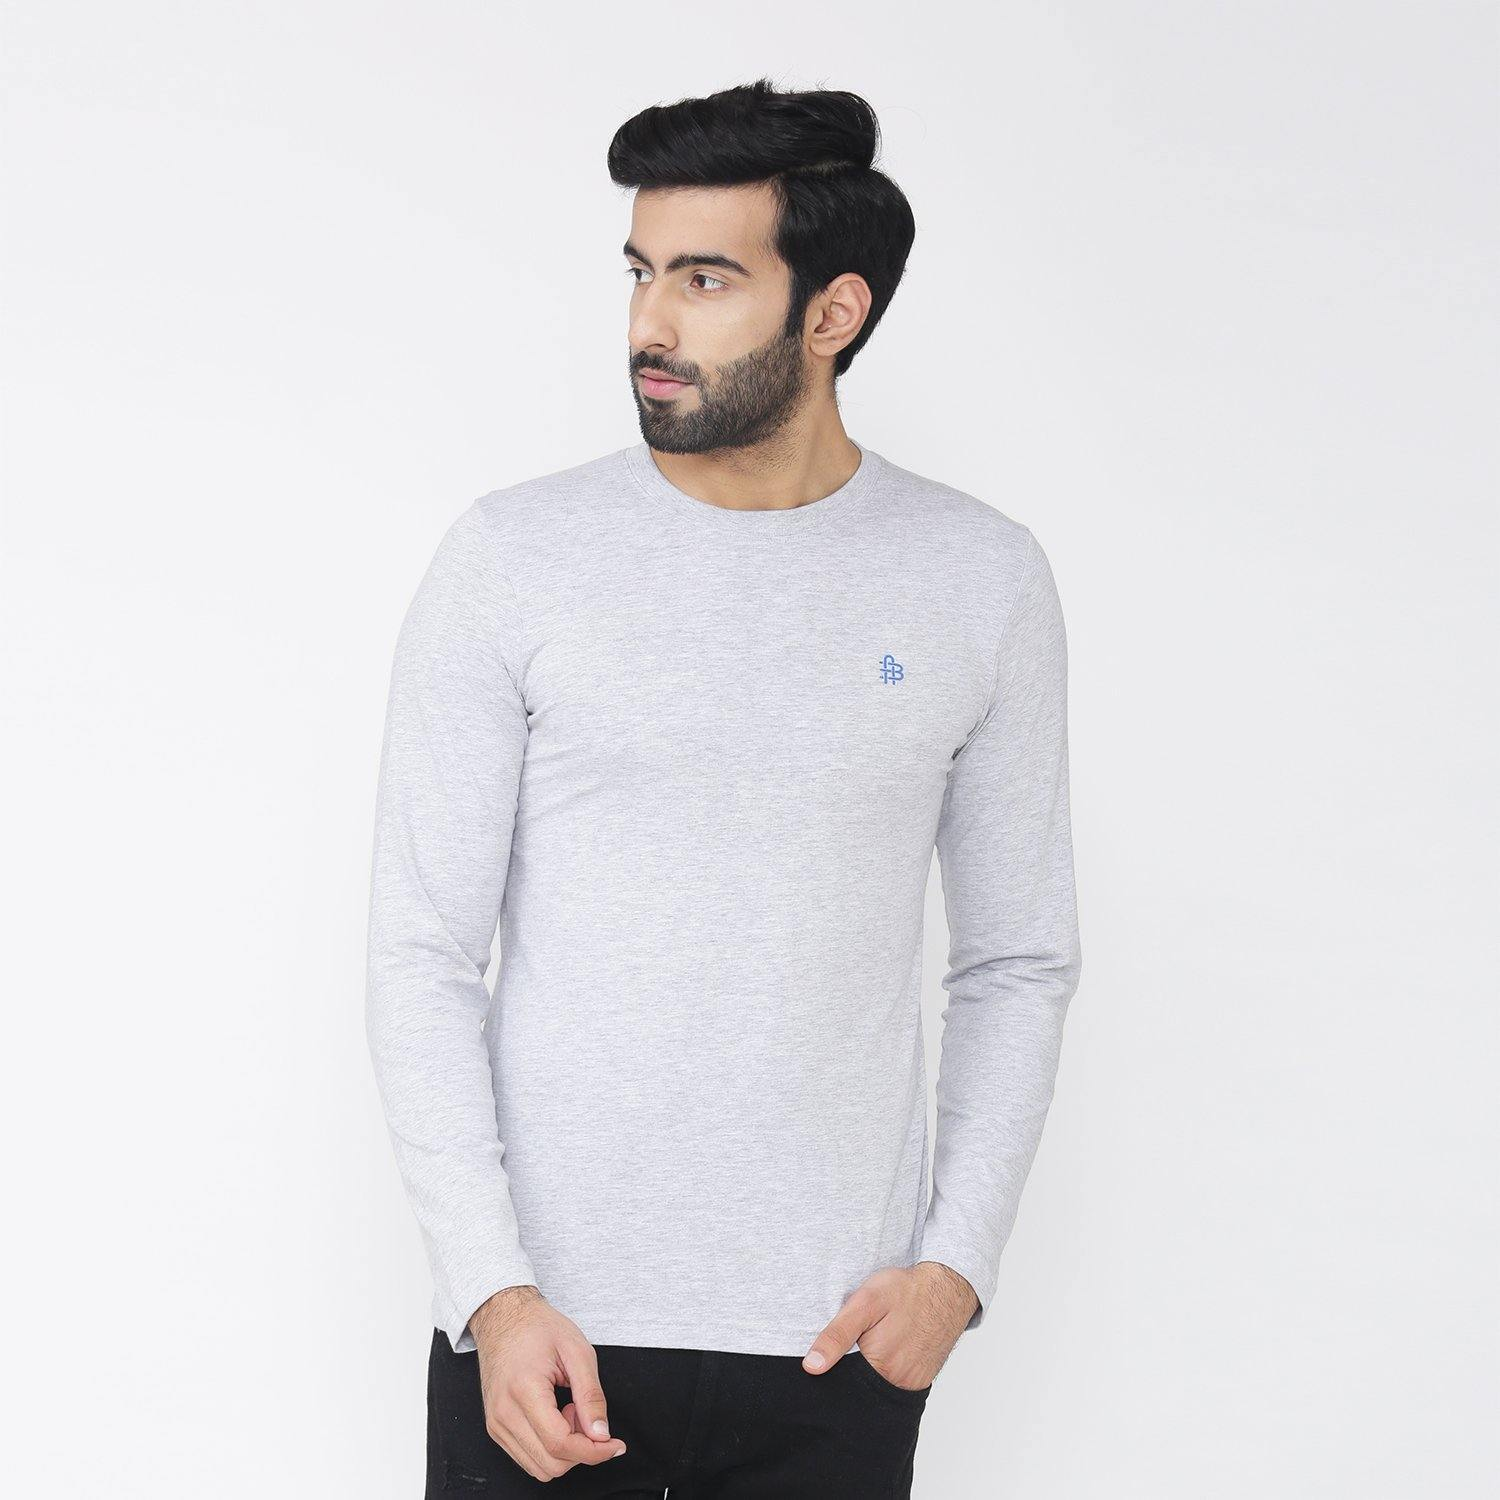 Men's Full Sleeve Round Neck T-Shirt - Light Grey